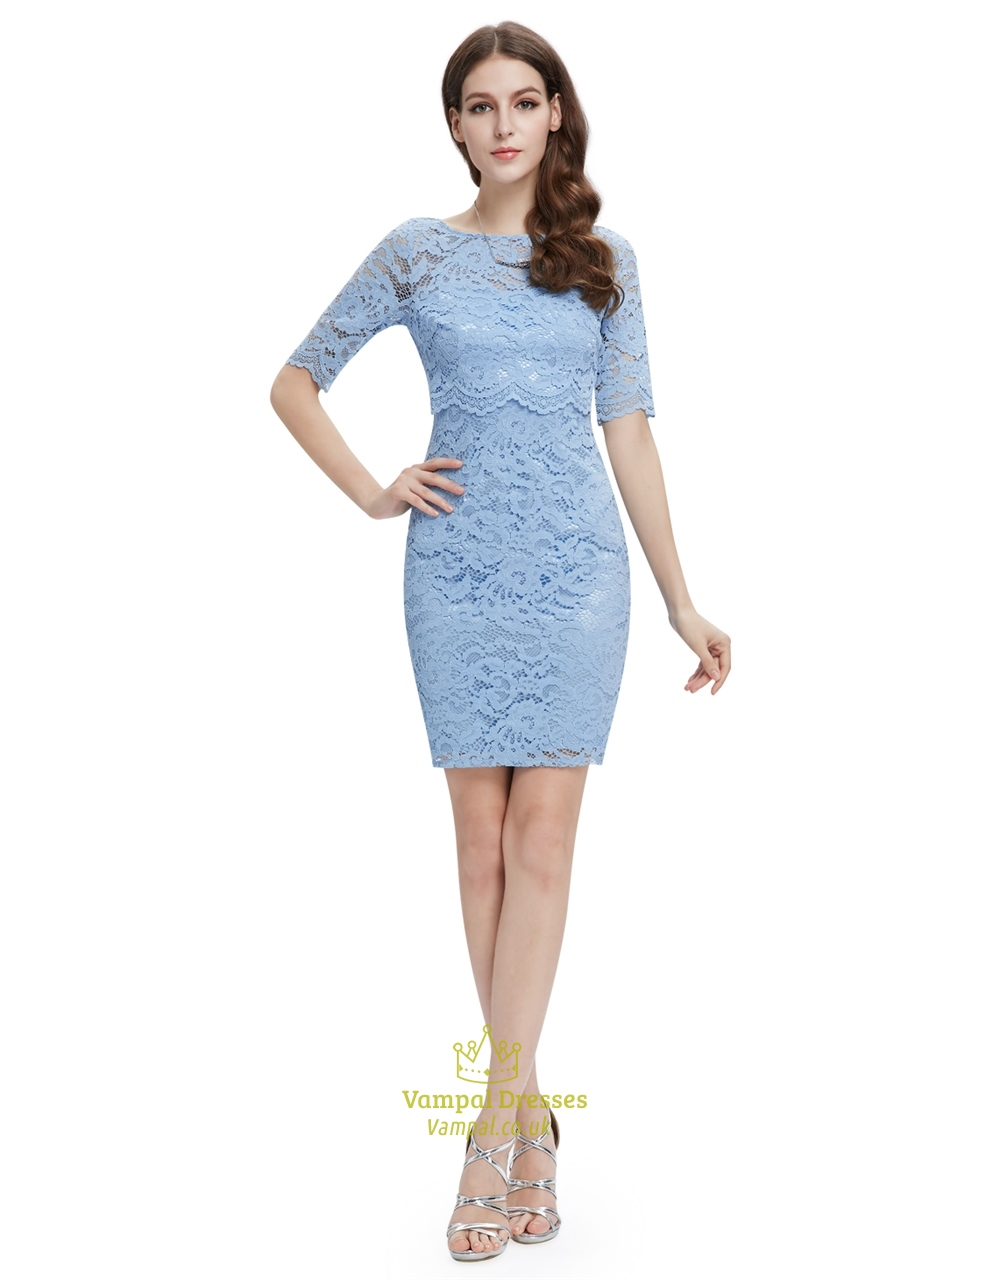 Light Blue Lace Sheath Cocktail Dress With Half Sleeves | Vampal Dresses